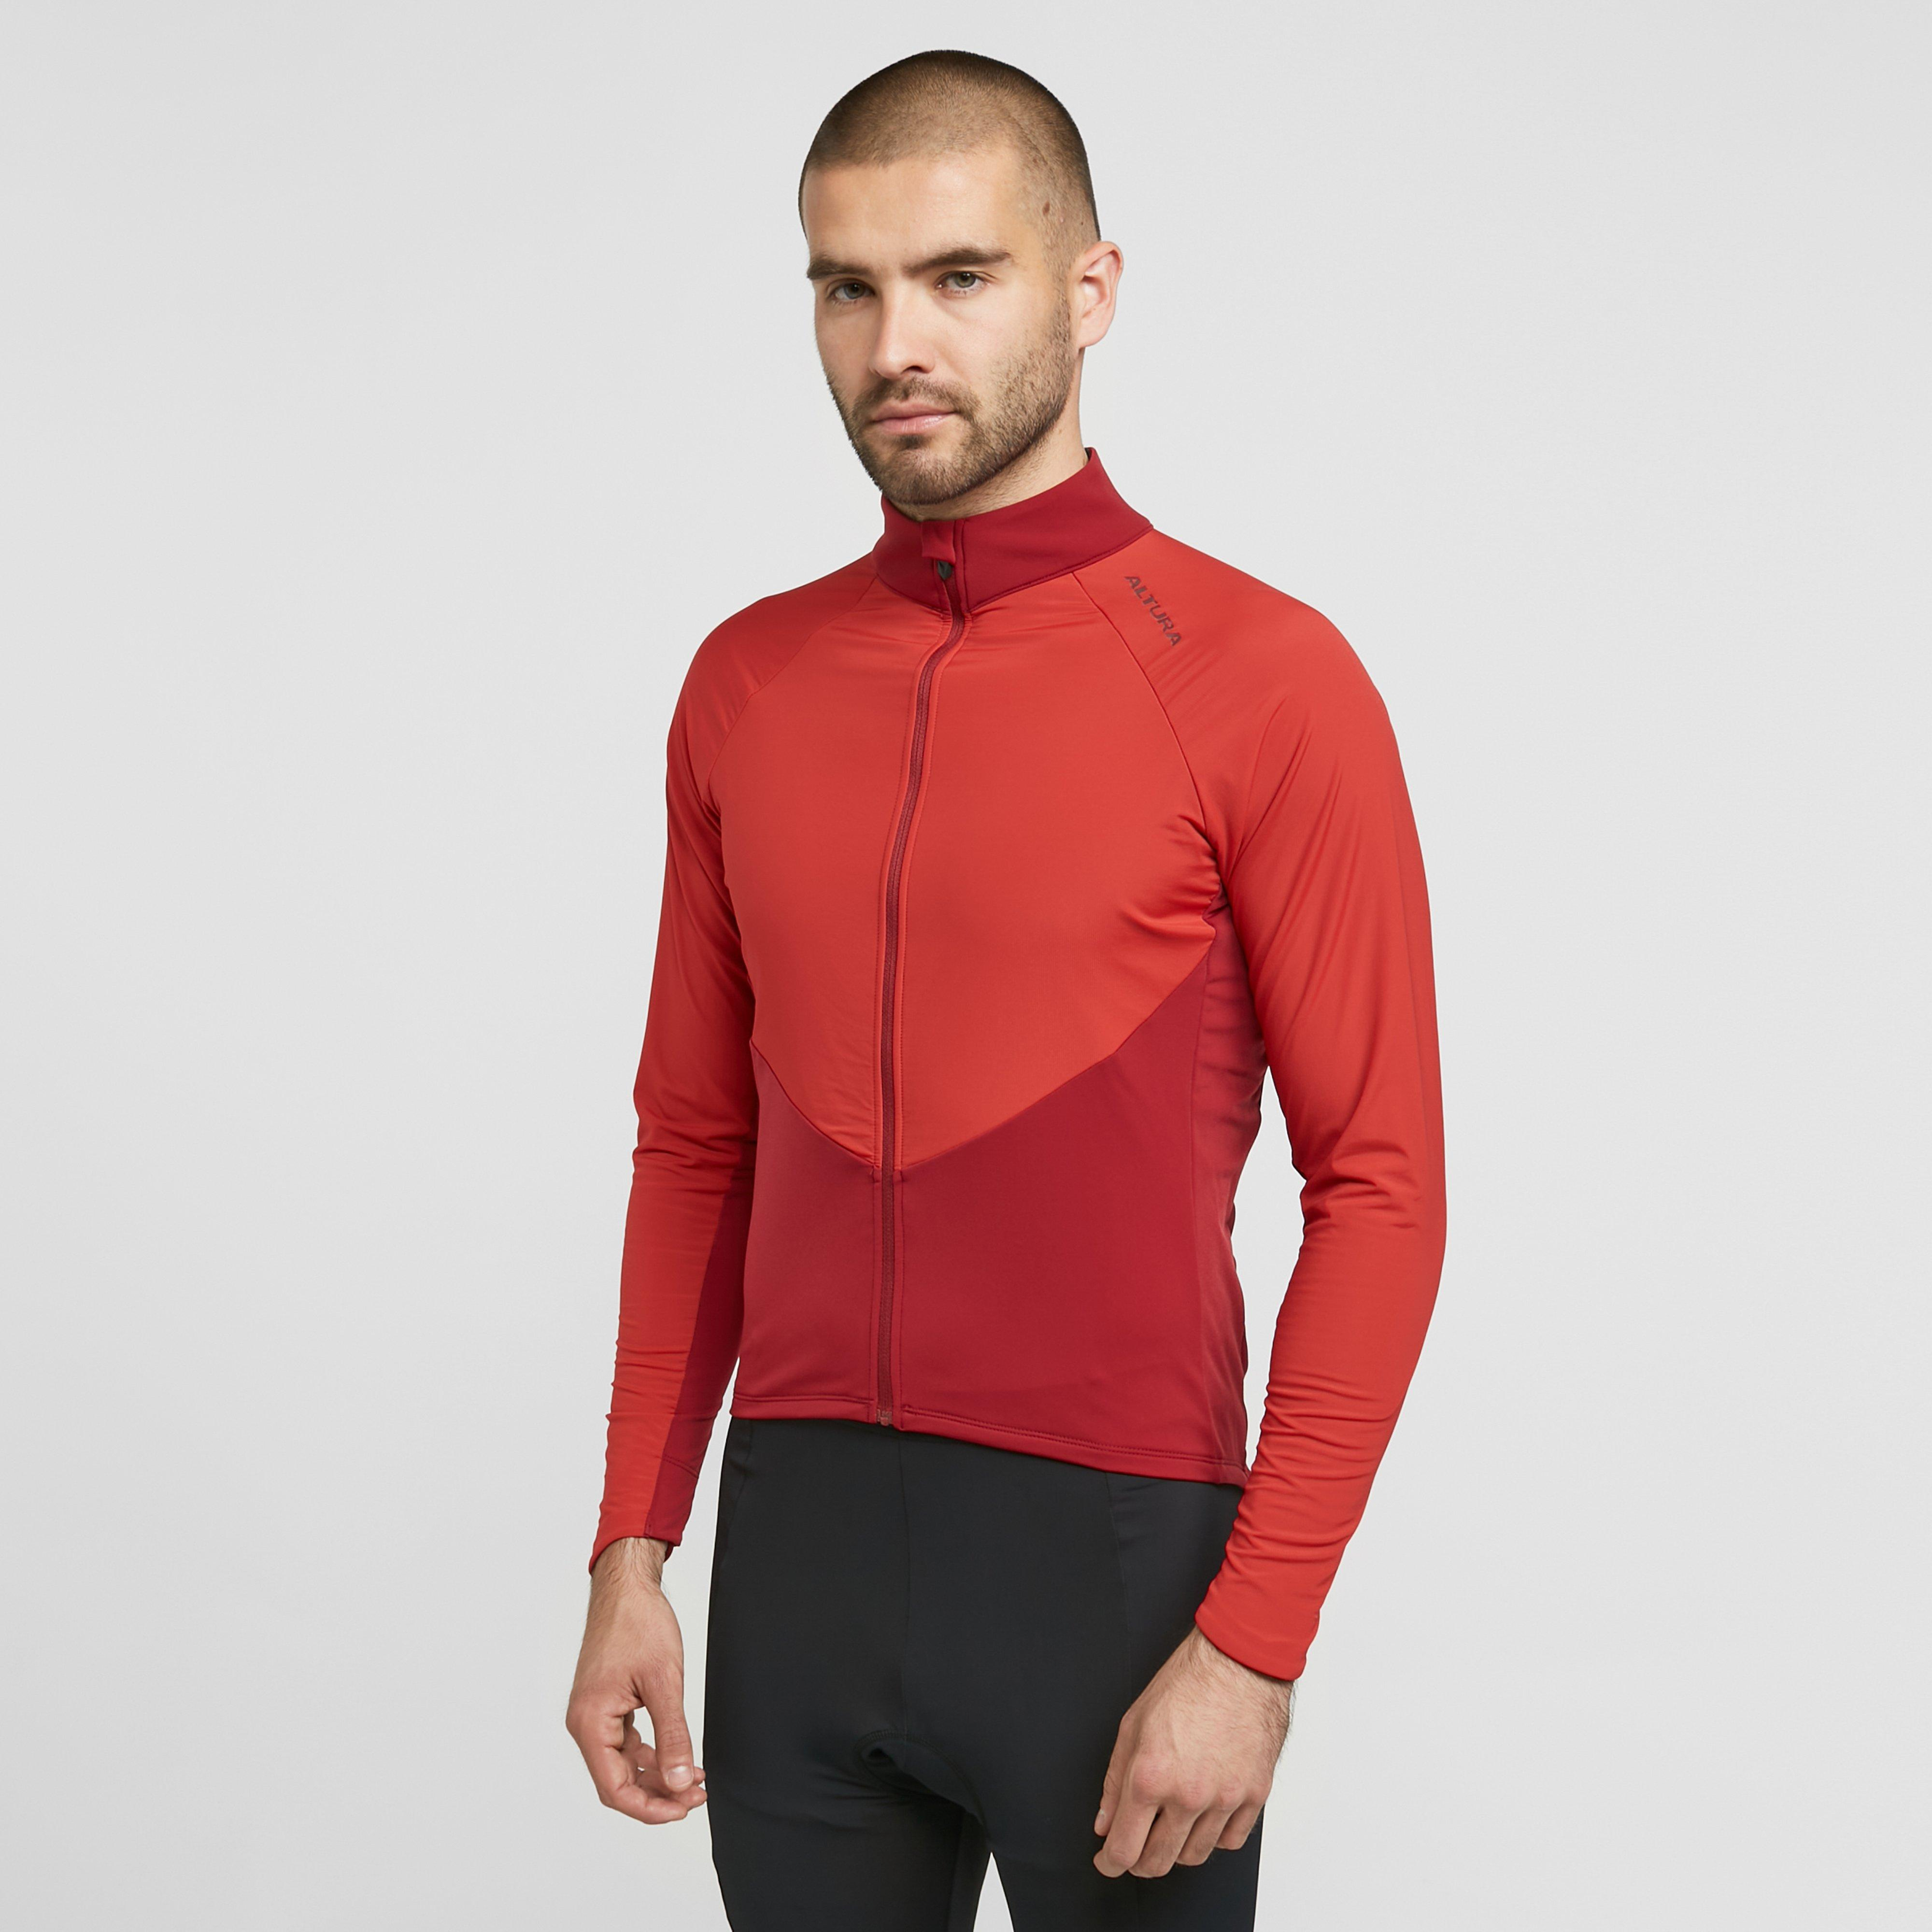 Image of Altura Men's Endurance Long Sleeve Jersey - Red/Rd, Red/RD